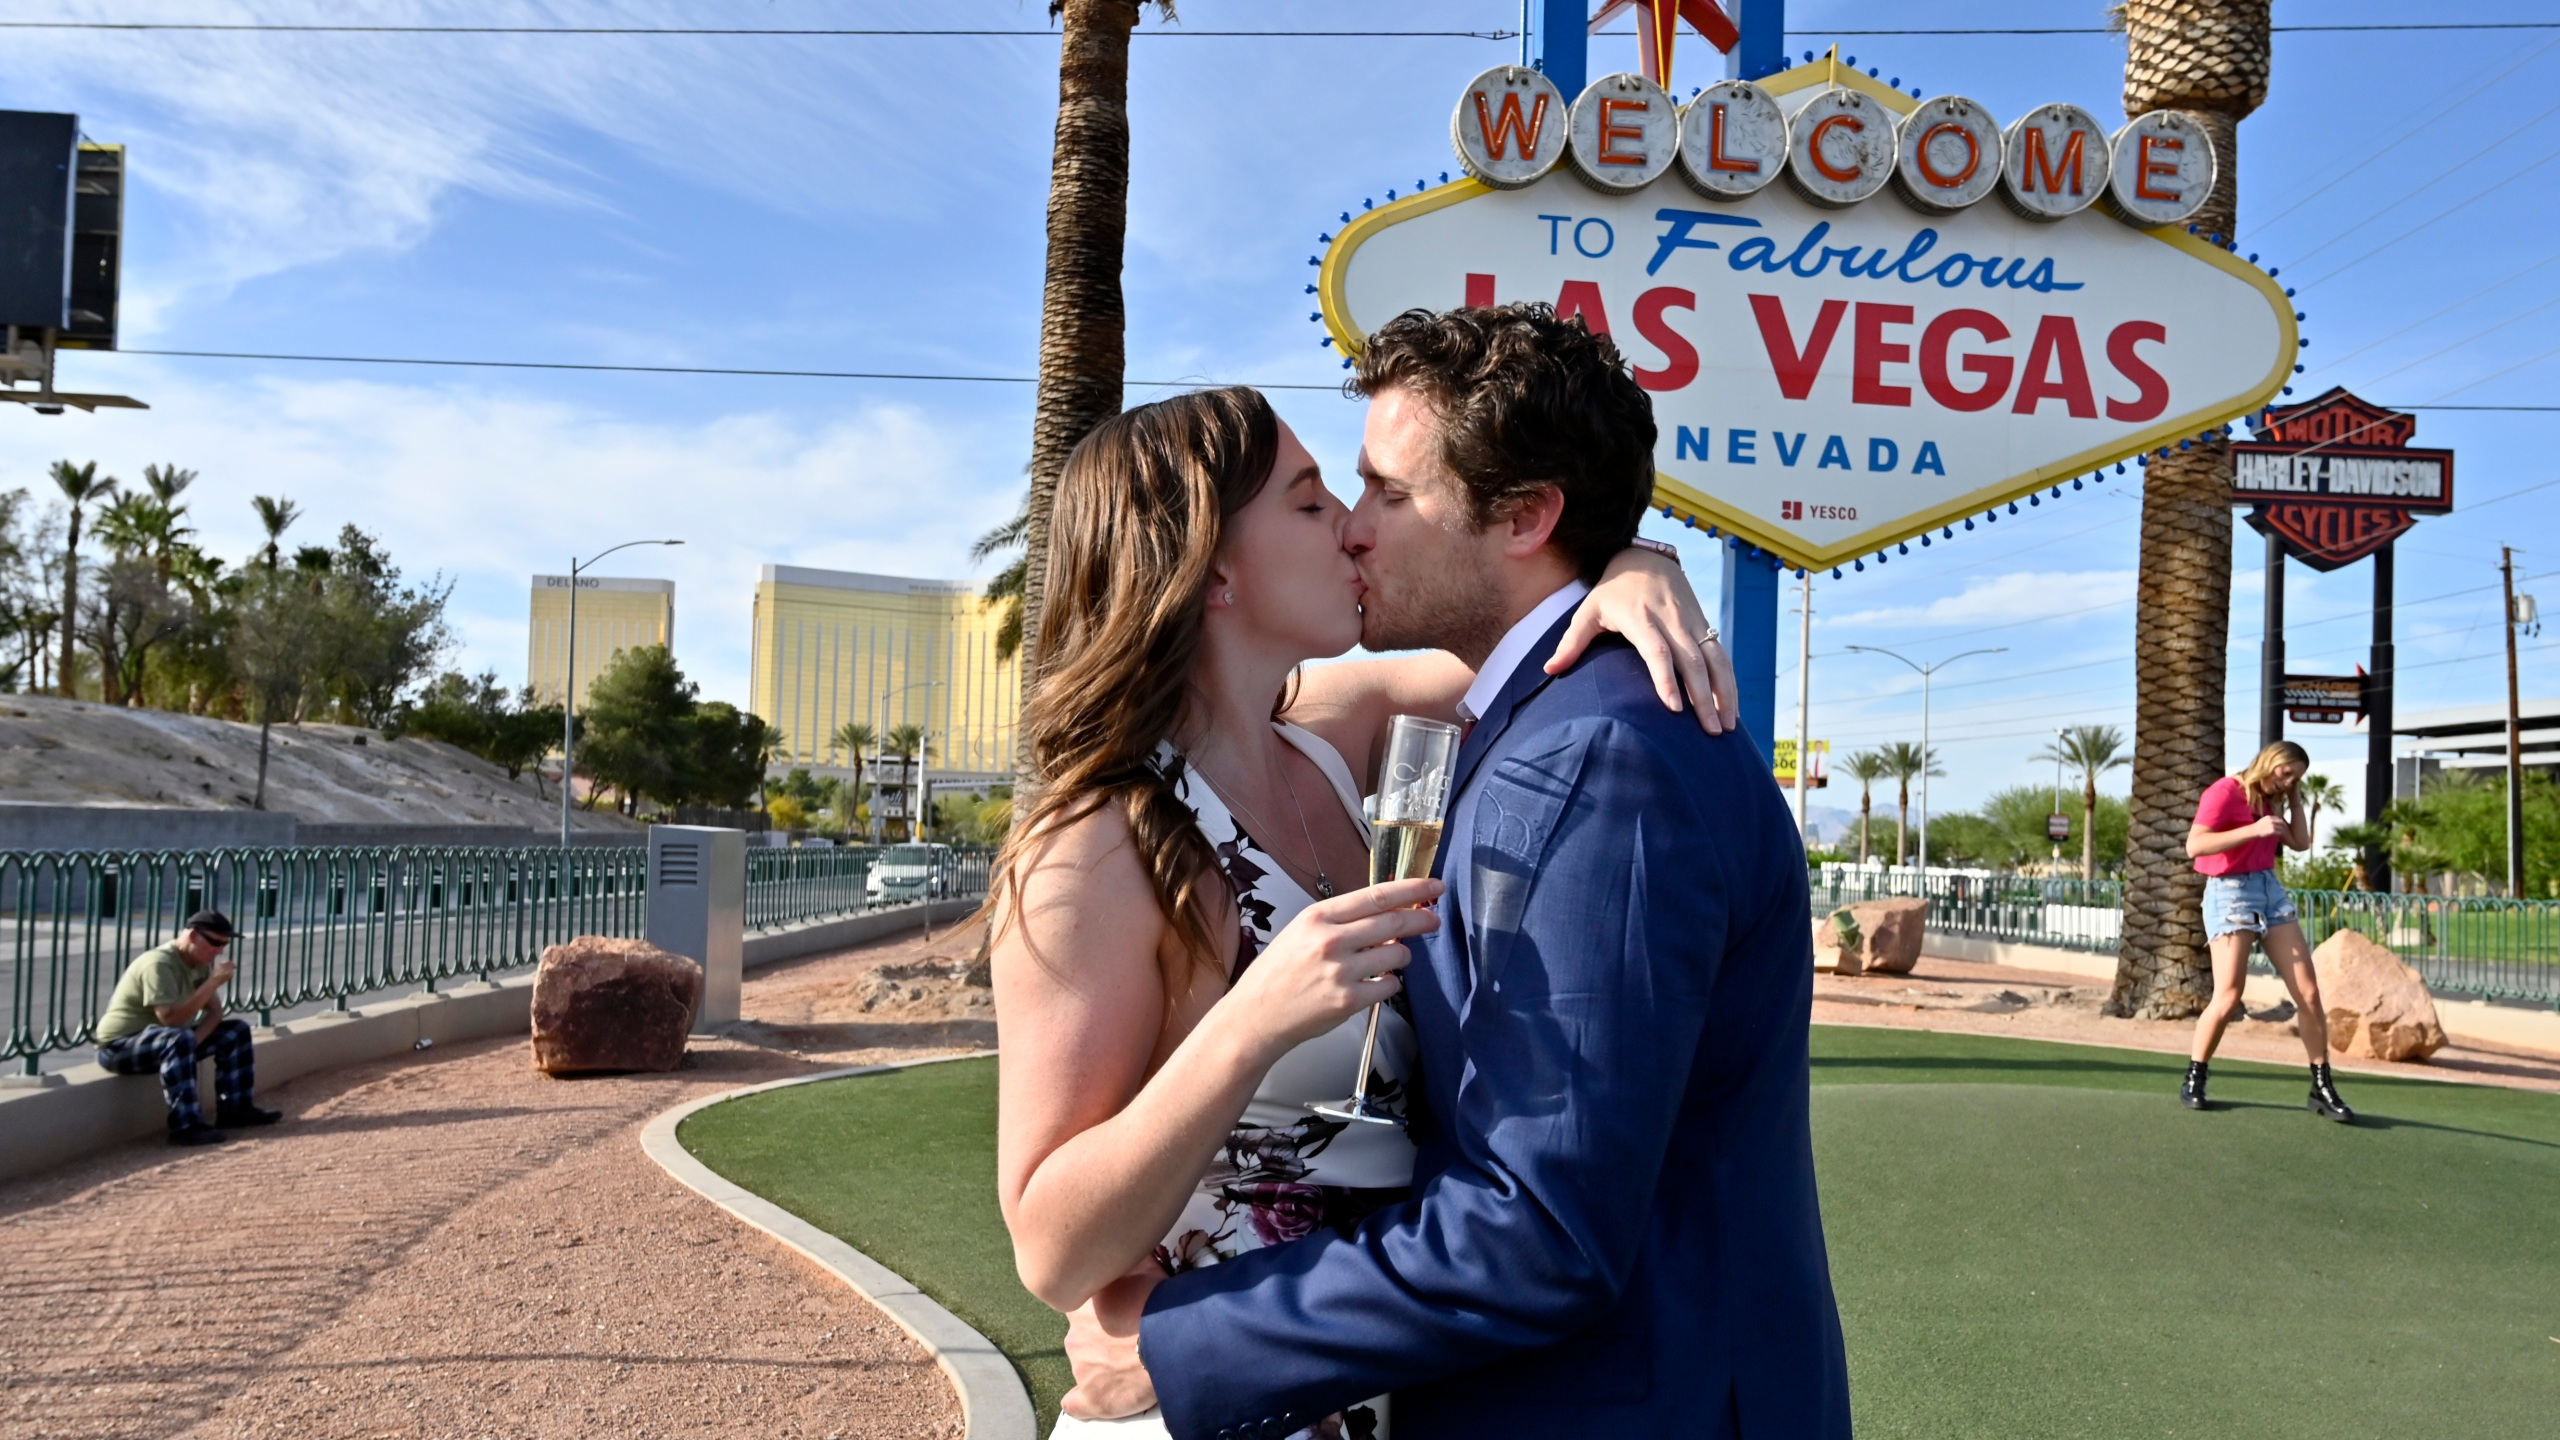 Las Vegas residents Elizabeth Billington, left, and Kenneth Quirk kiss as they celebrate what would have been their wedding day at the Welcome to Las Vegas sign on April 25, 2020. (David Becker / AFP / Getty Images)